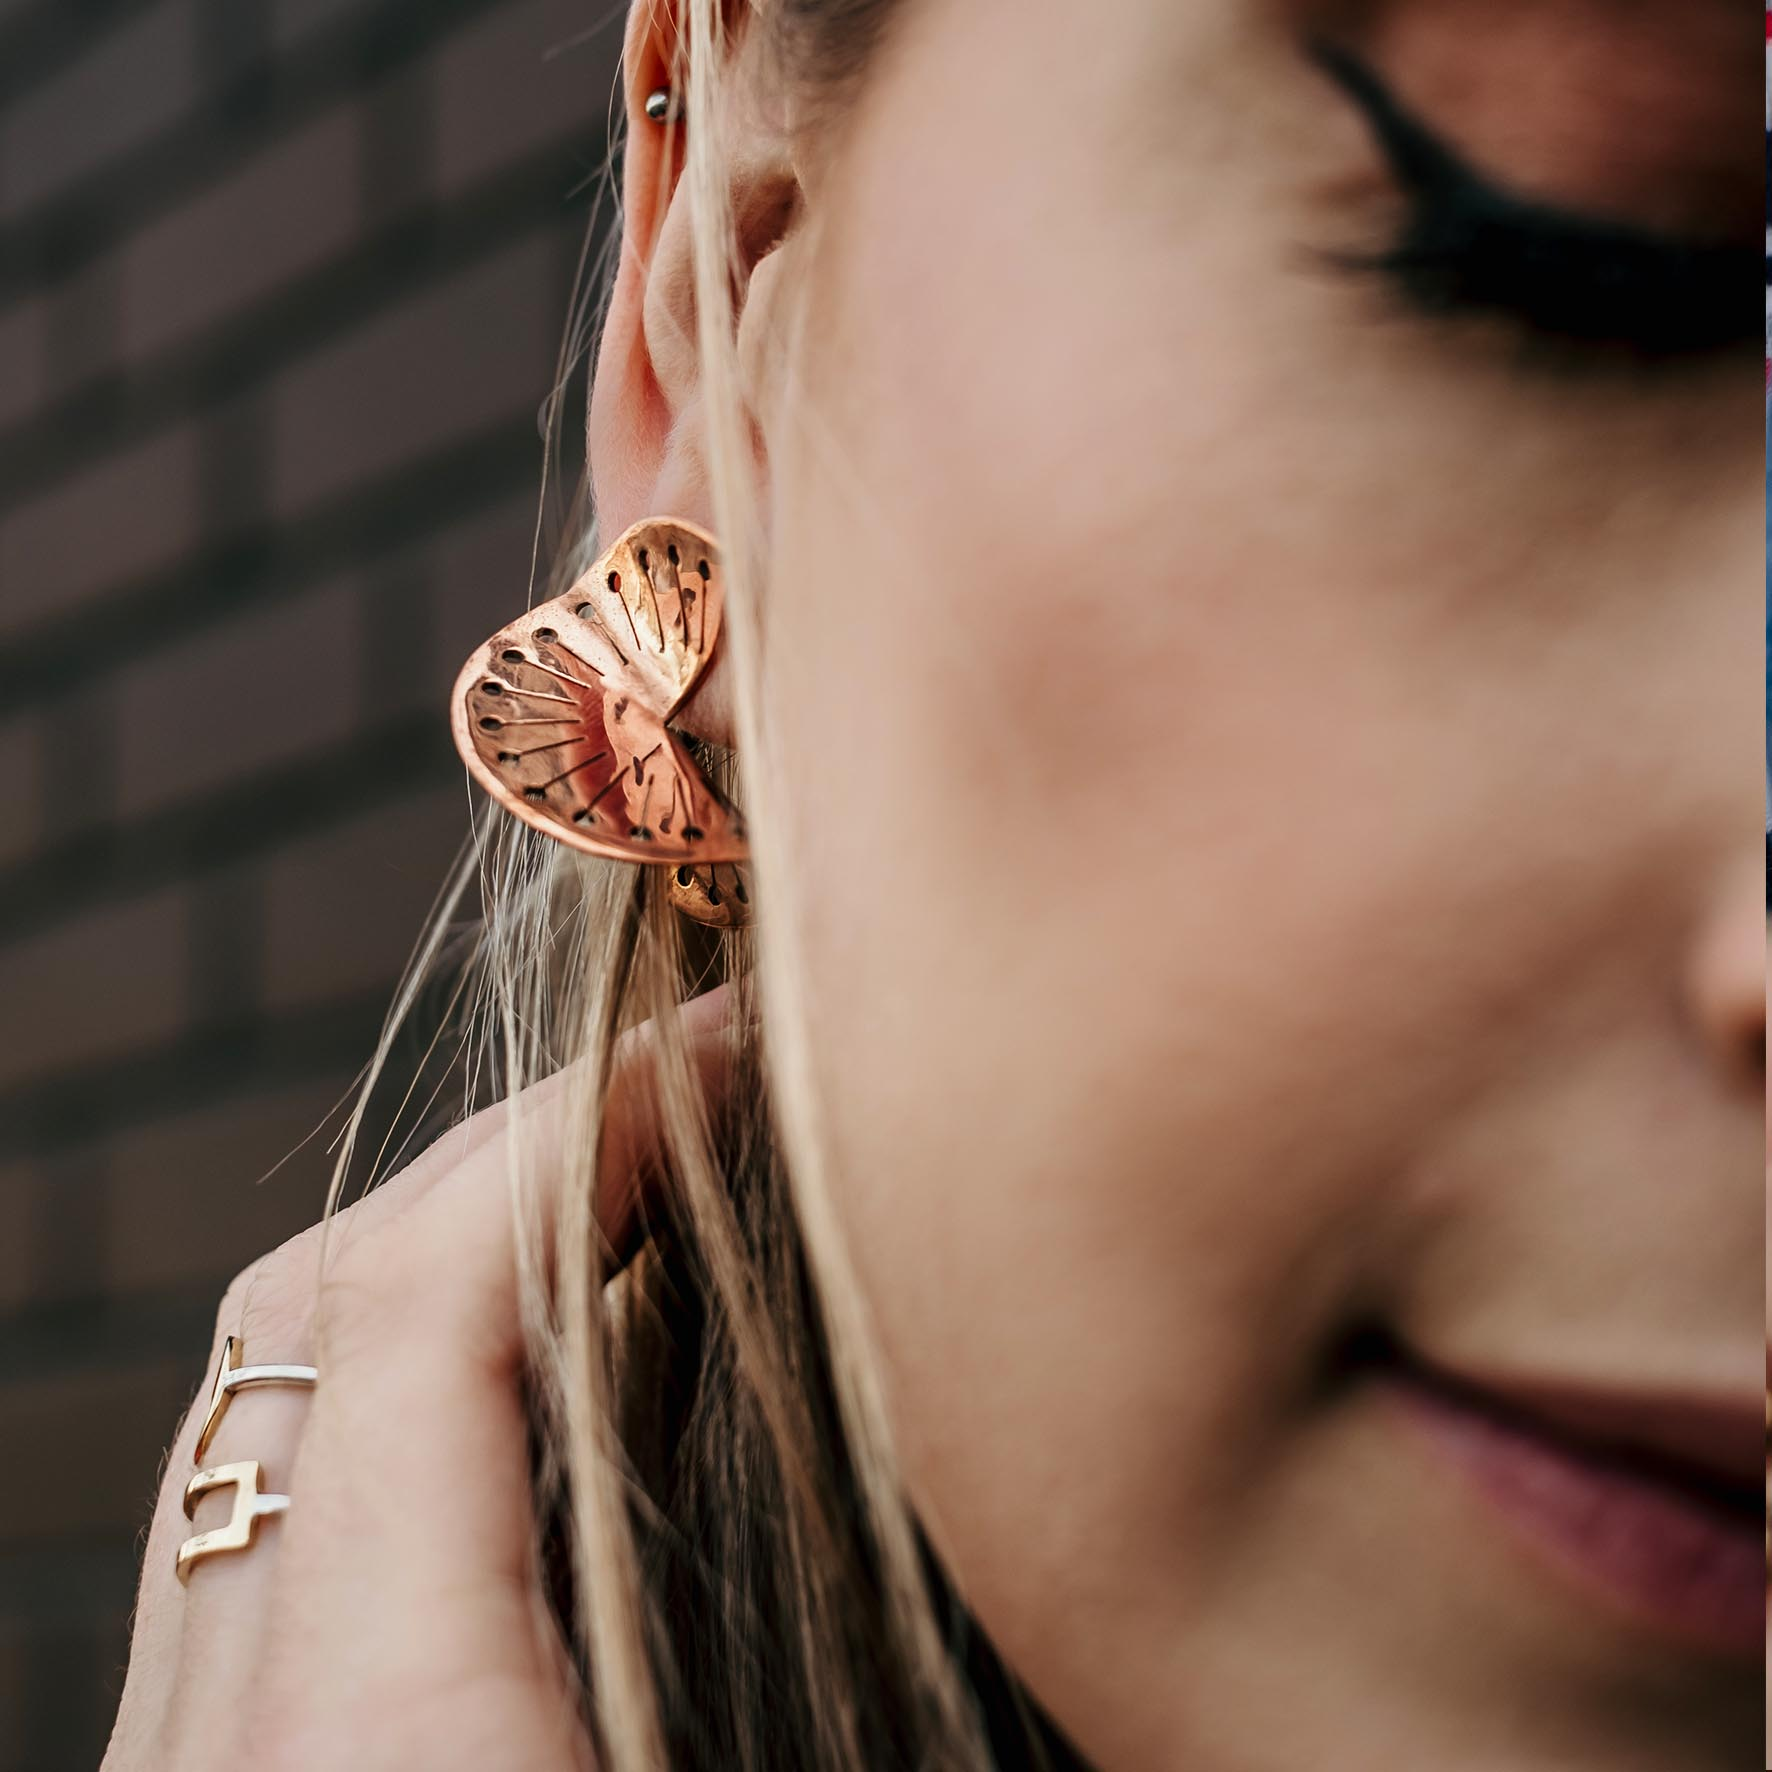 The TWISTED DANDELION Stud Earring has beautiful, fine detail cut into the shape, adding even more WOW to an already stunning design! 